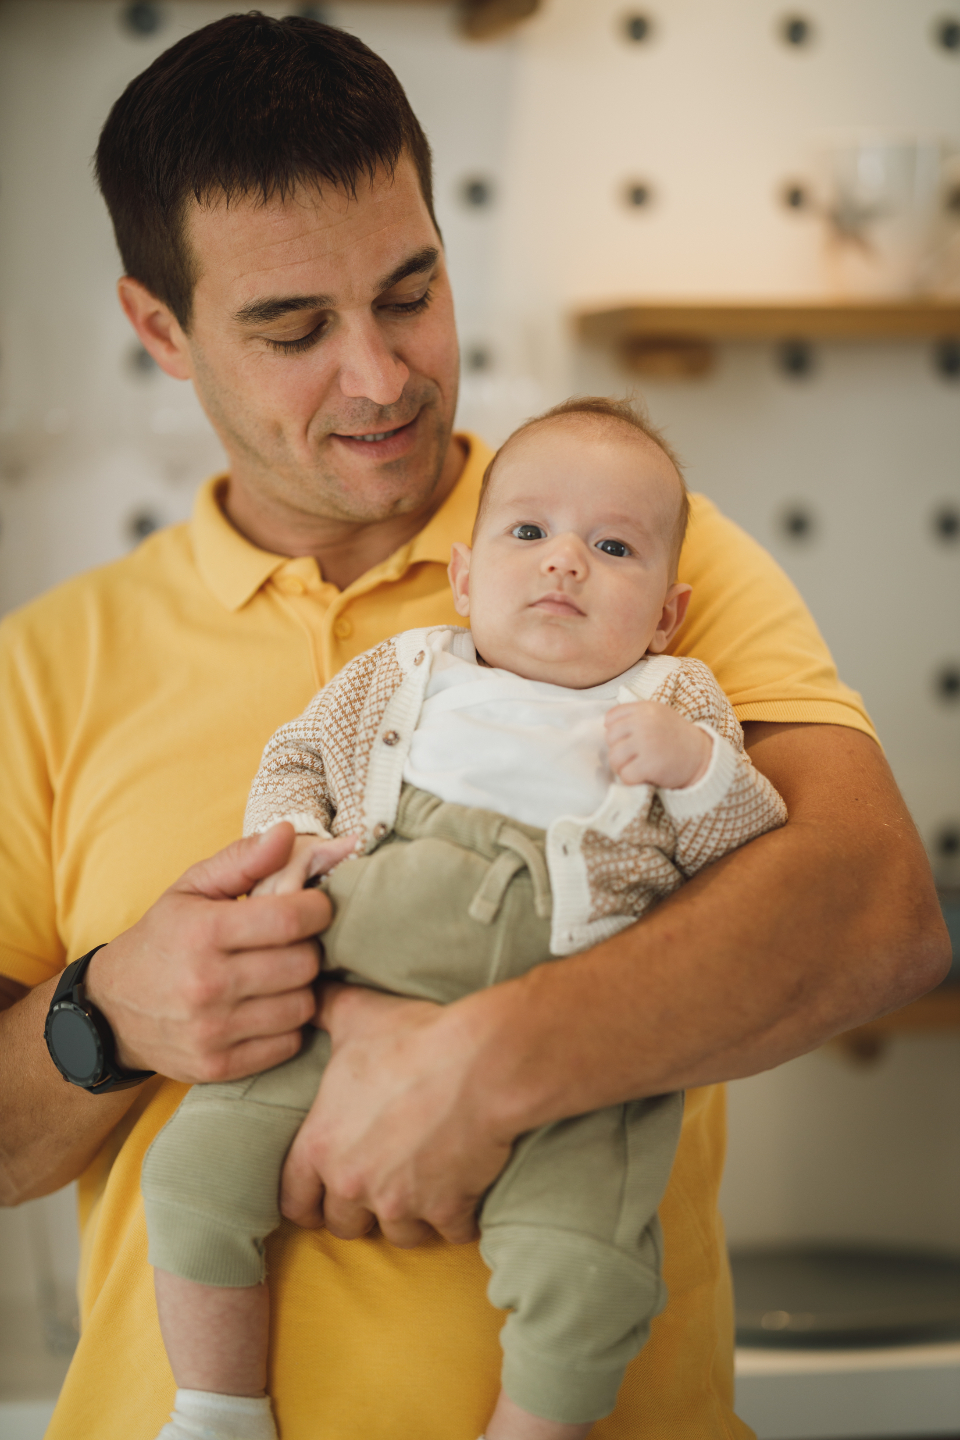 Free stock photo of father baby